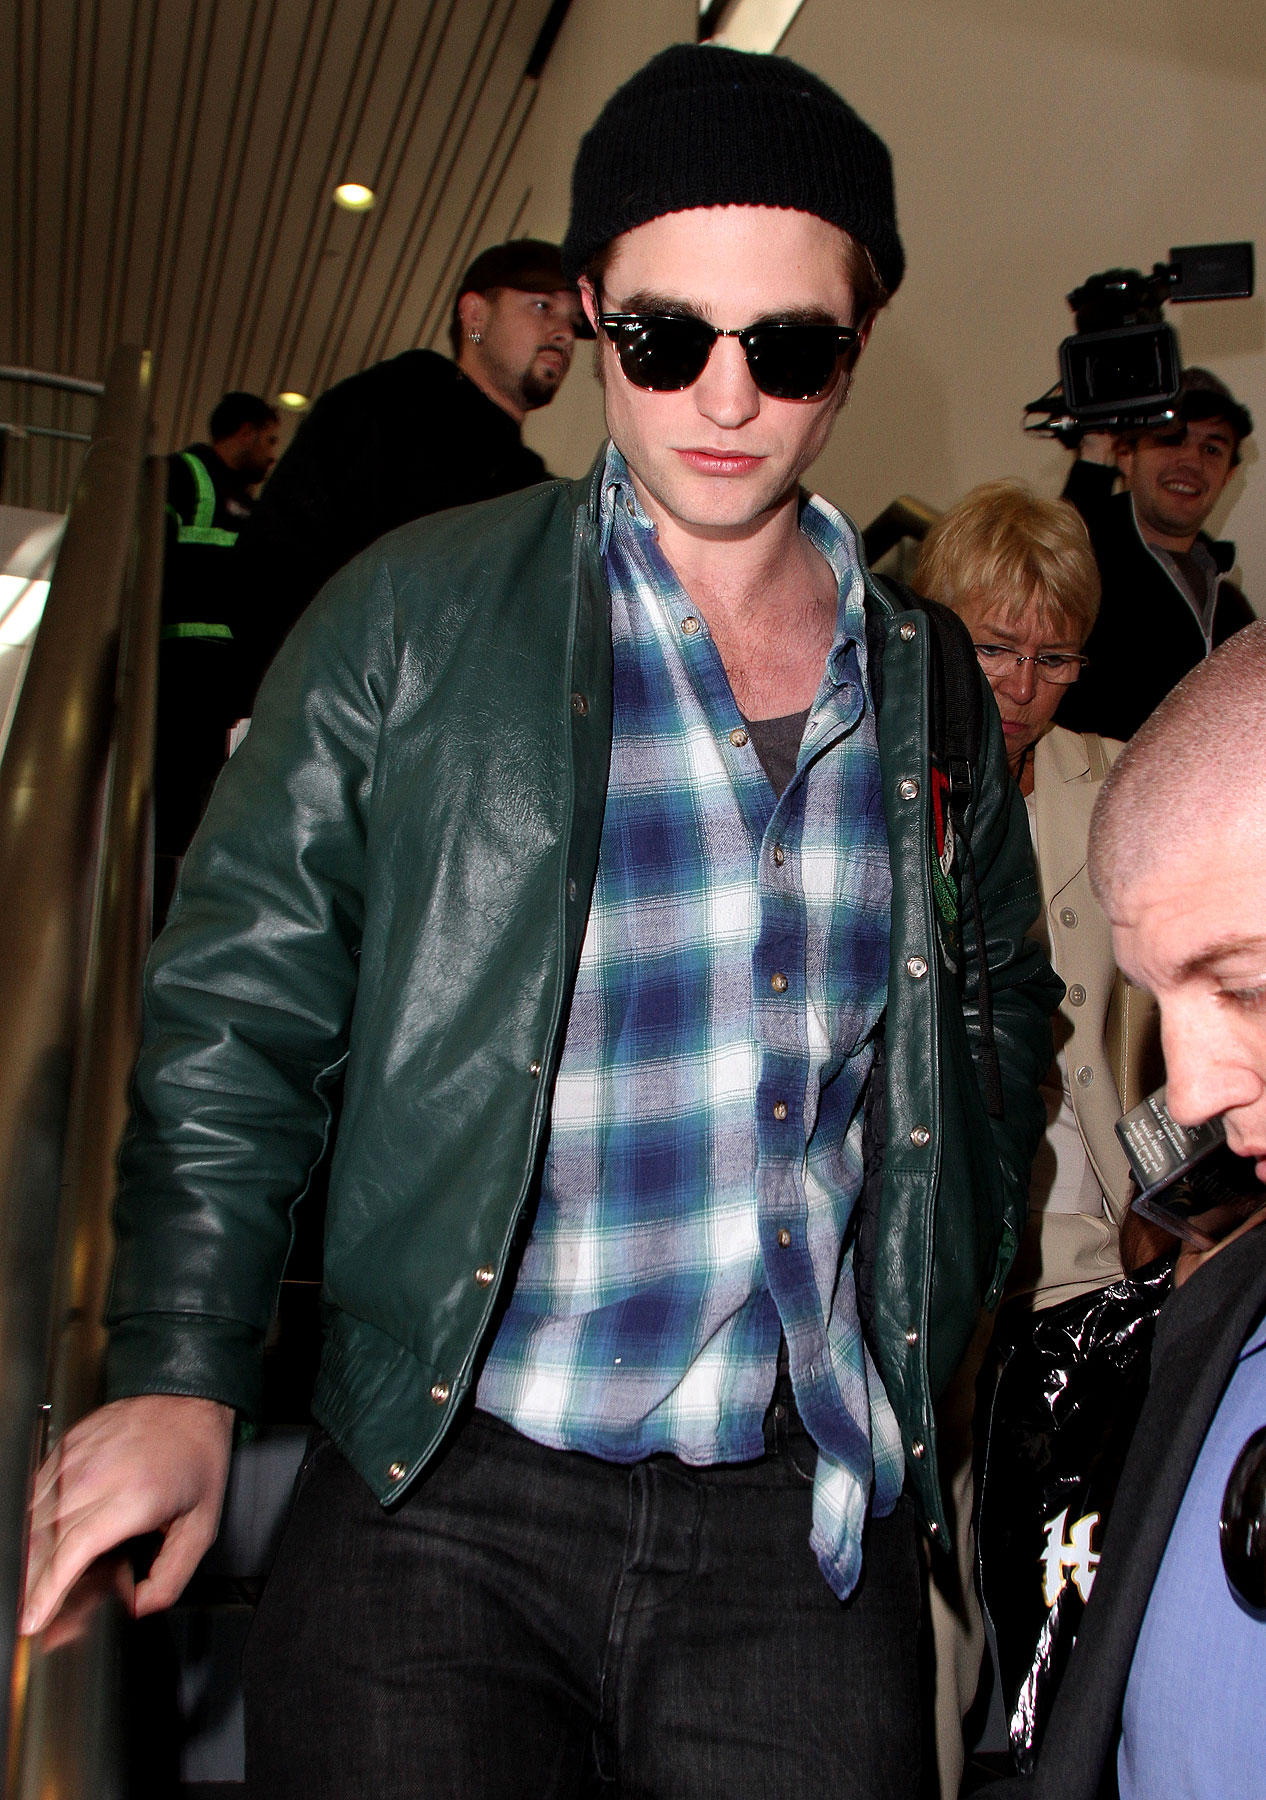 PHOTO GALLERY: Robert Pattinson Touches Down